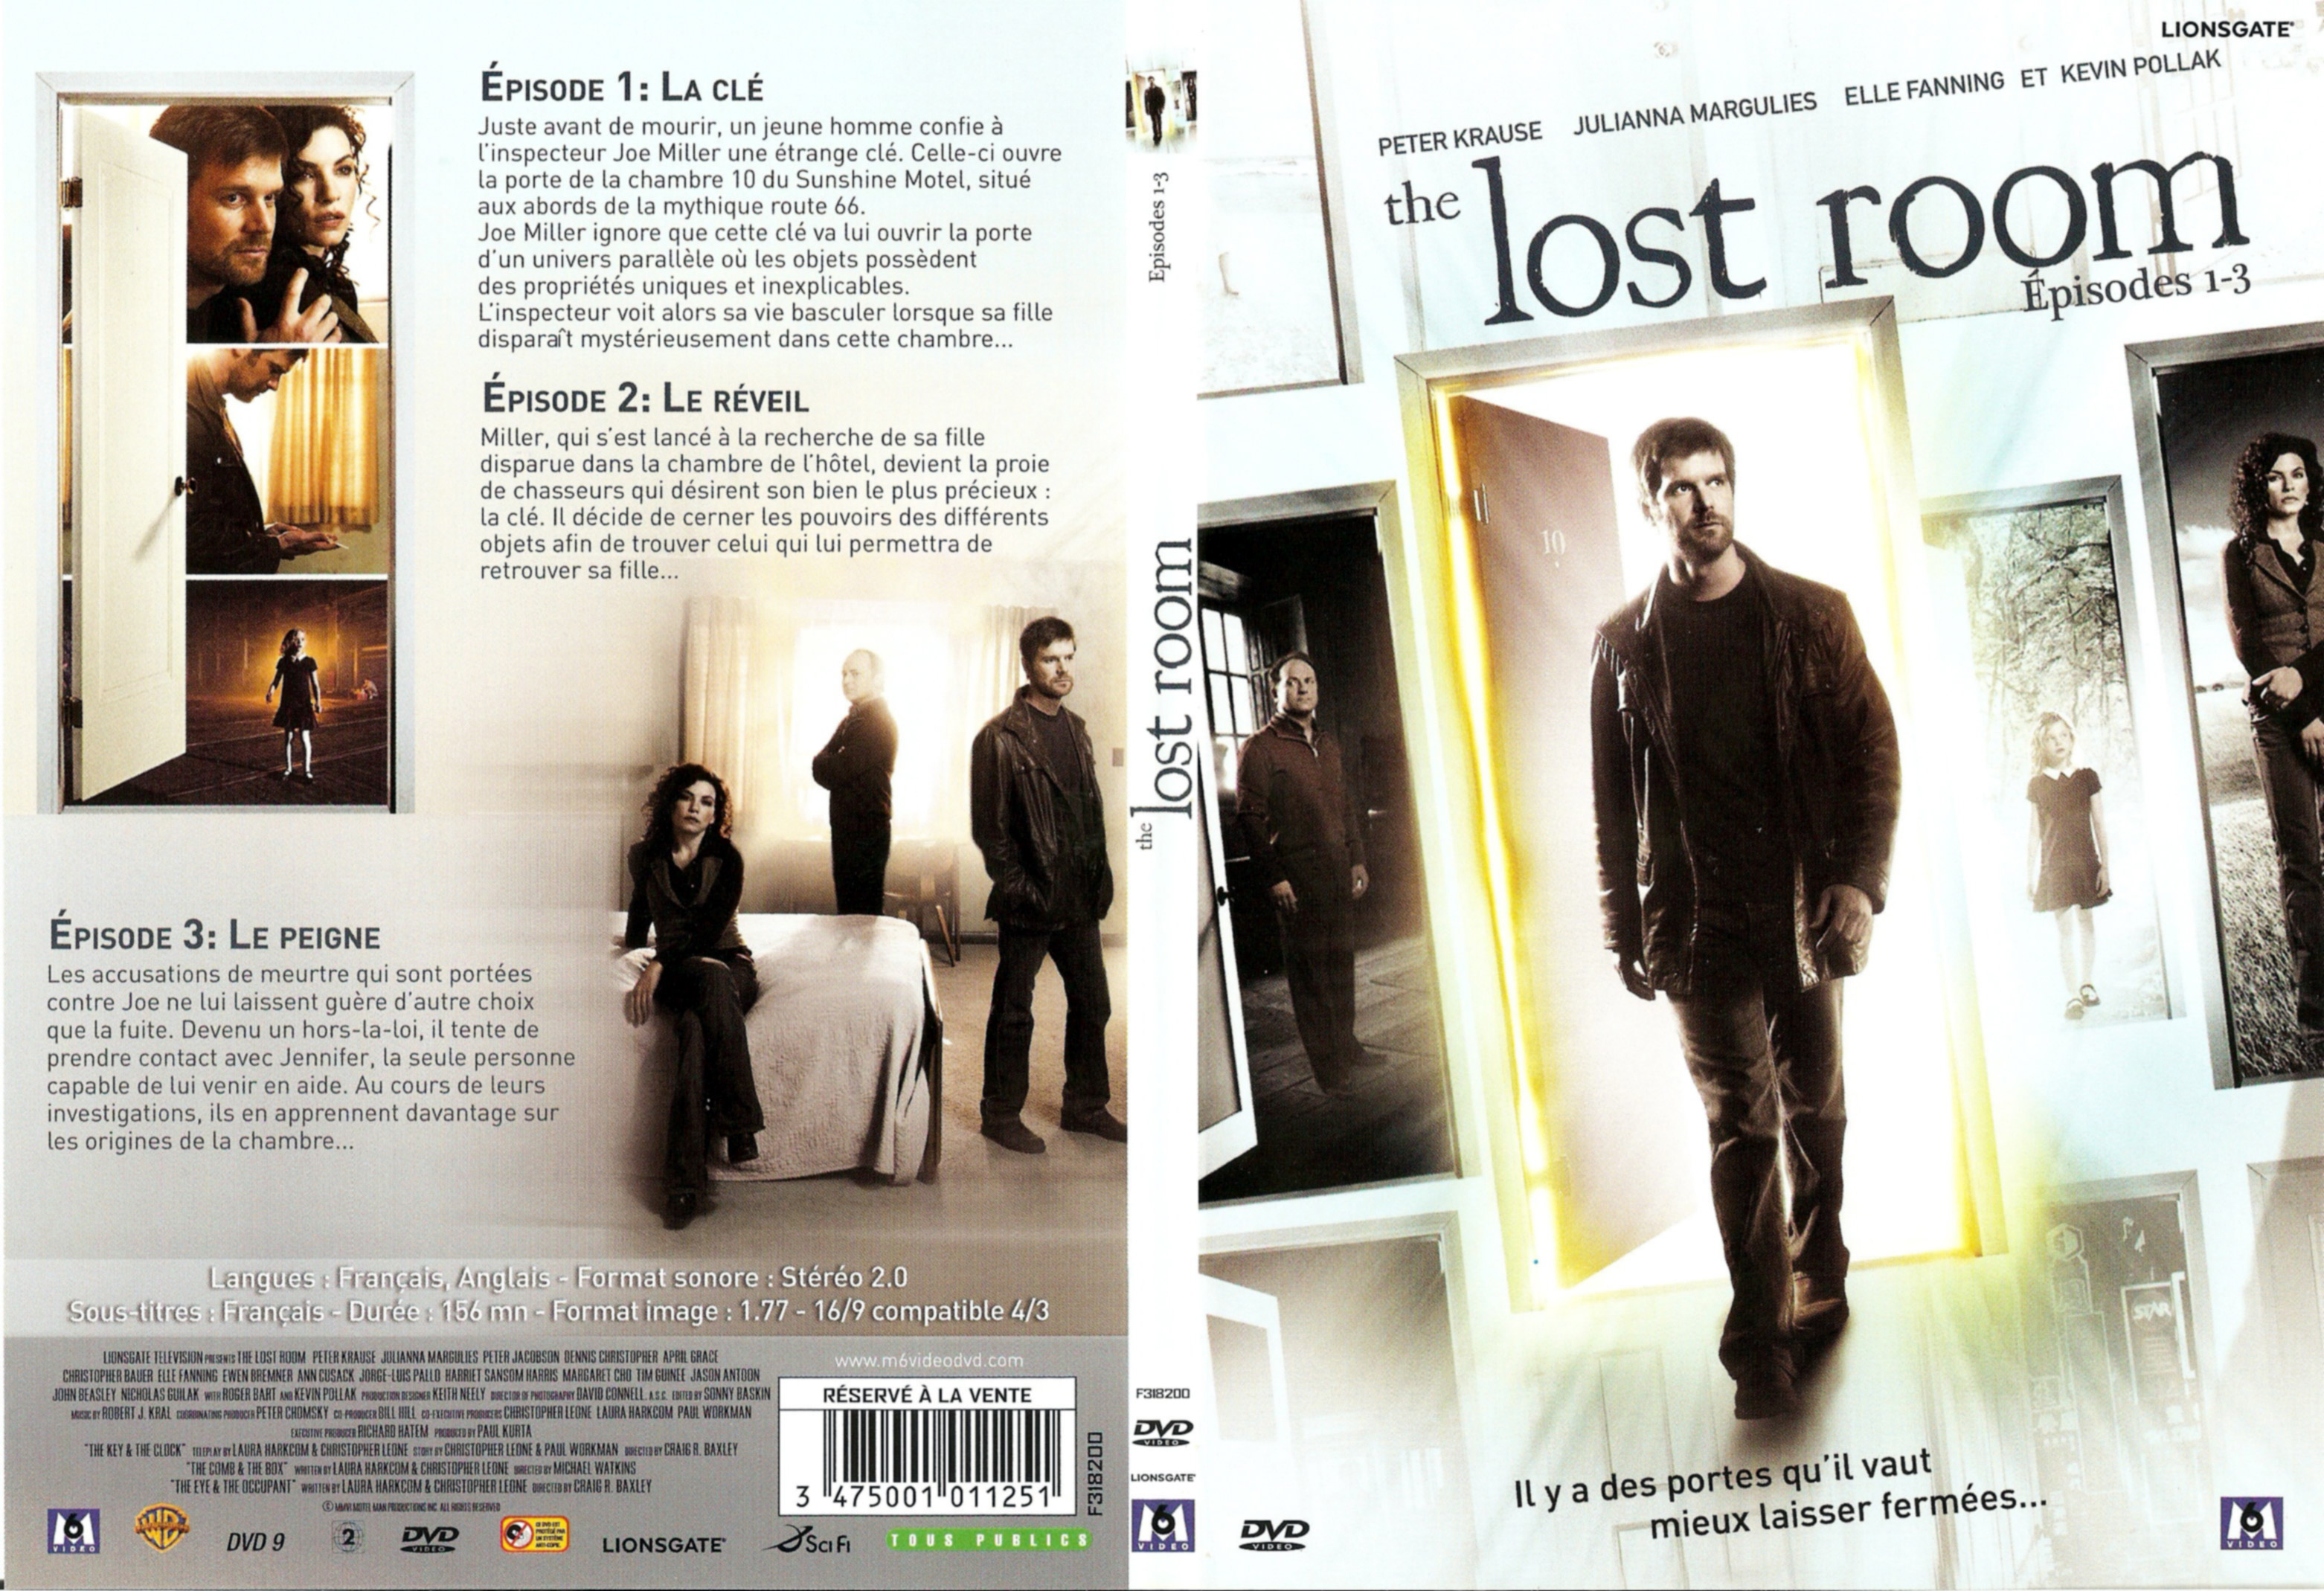 The lost room full movie - Party with bhoothnath movie download